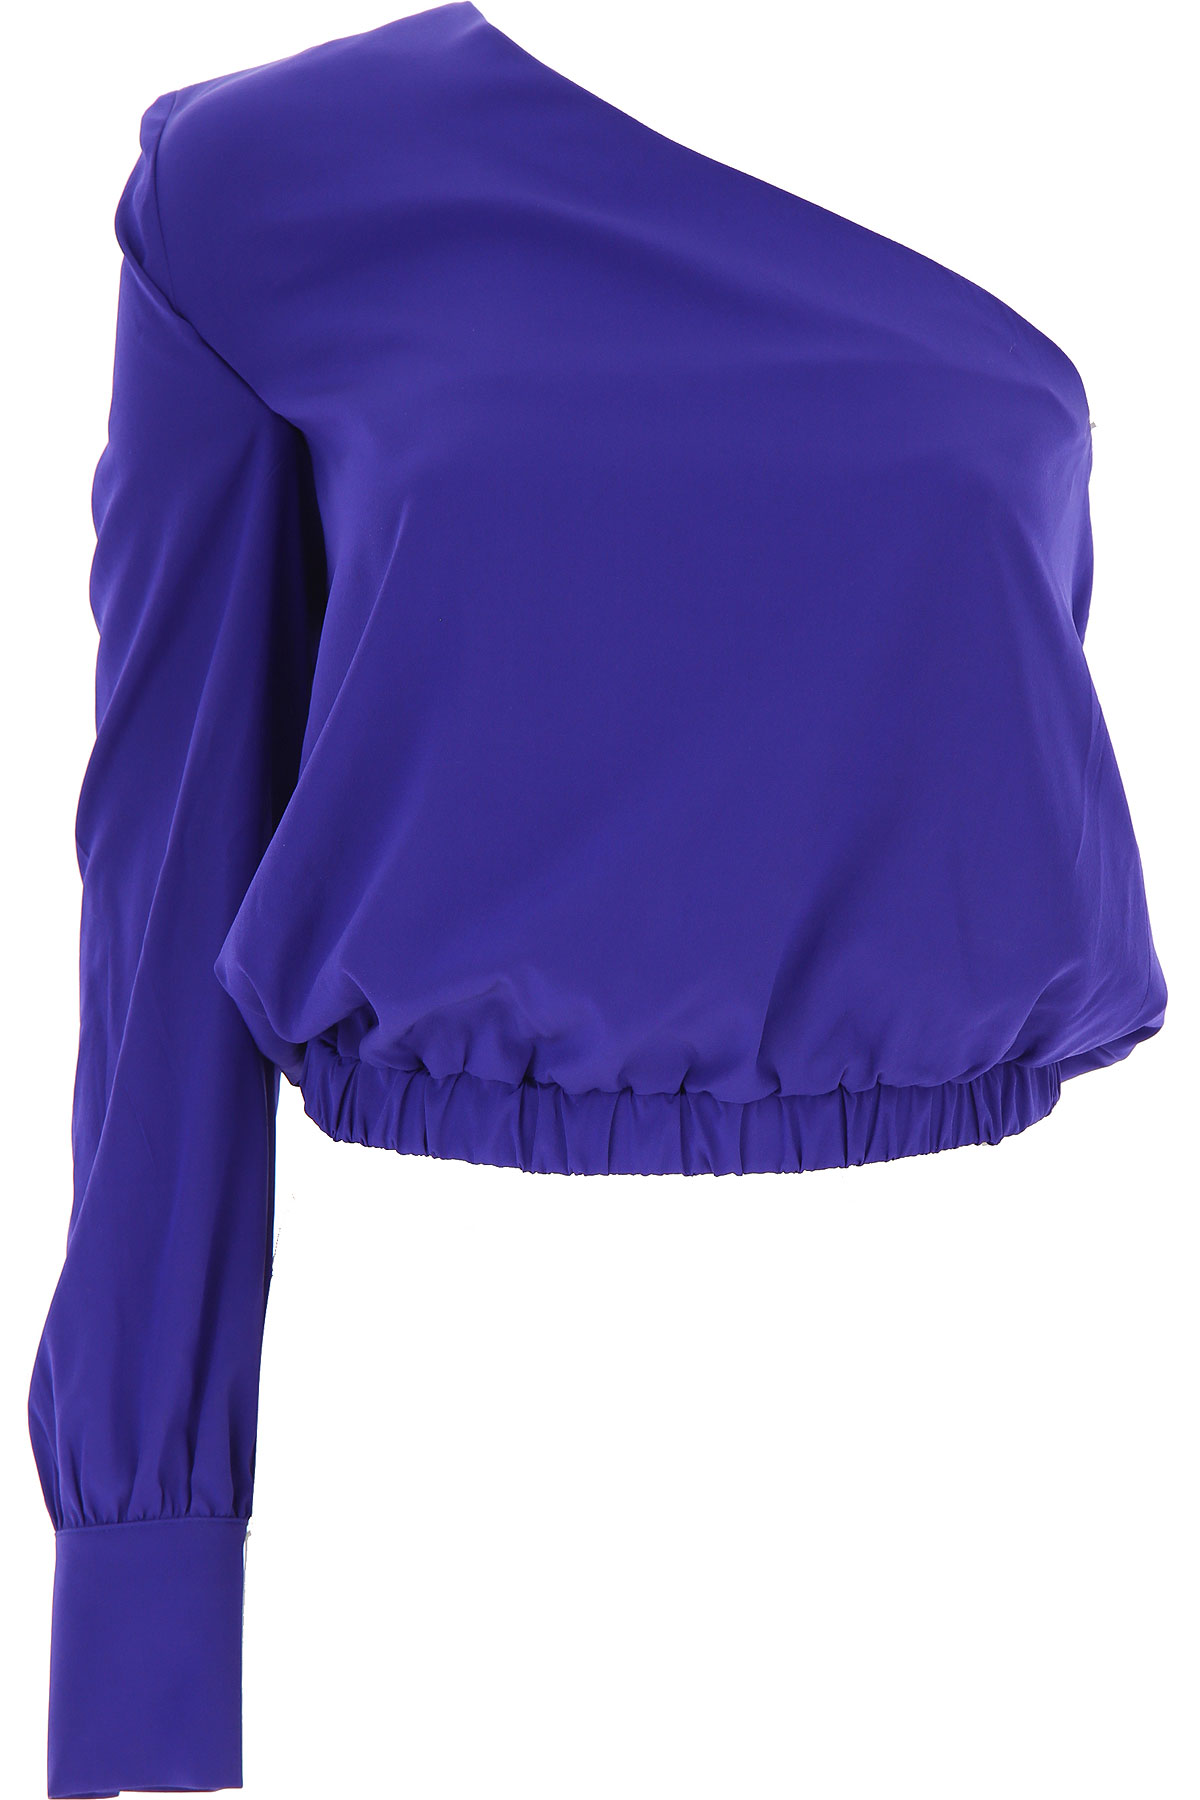 Federica Tosi Top for Women On Sale, Electric Blue, Silk, 2019, 2 4